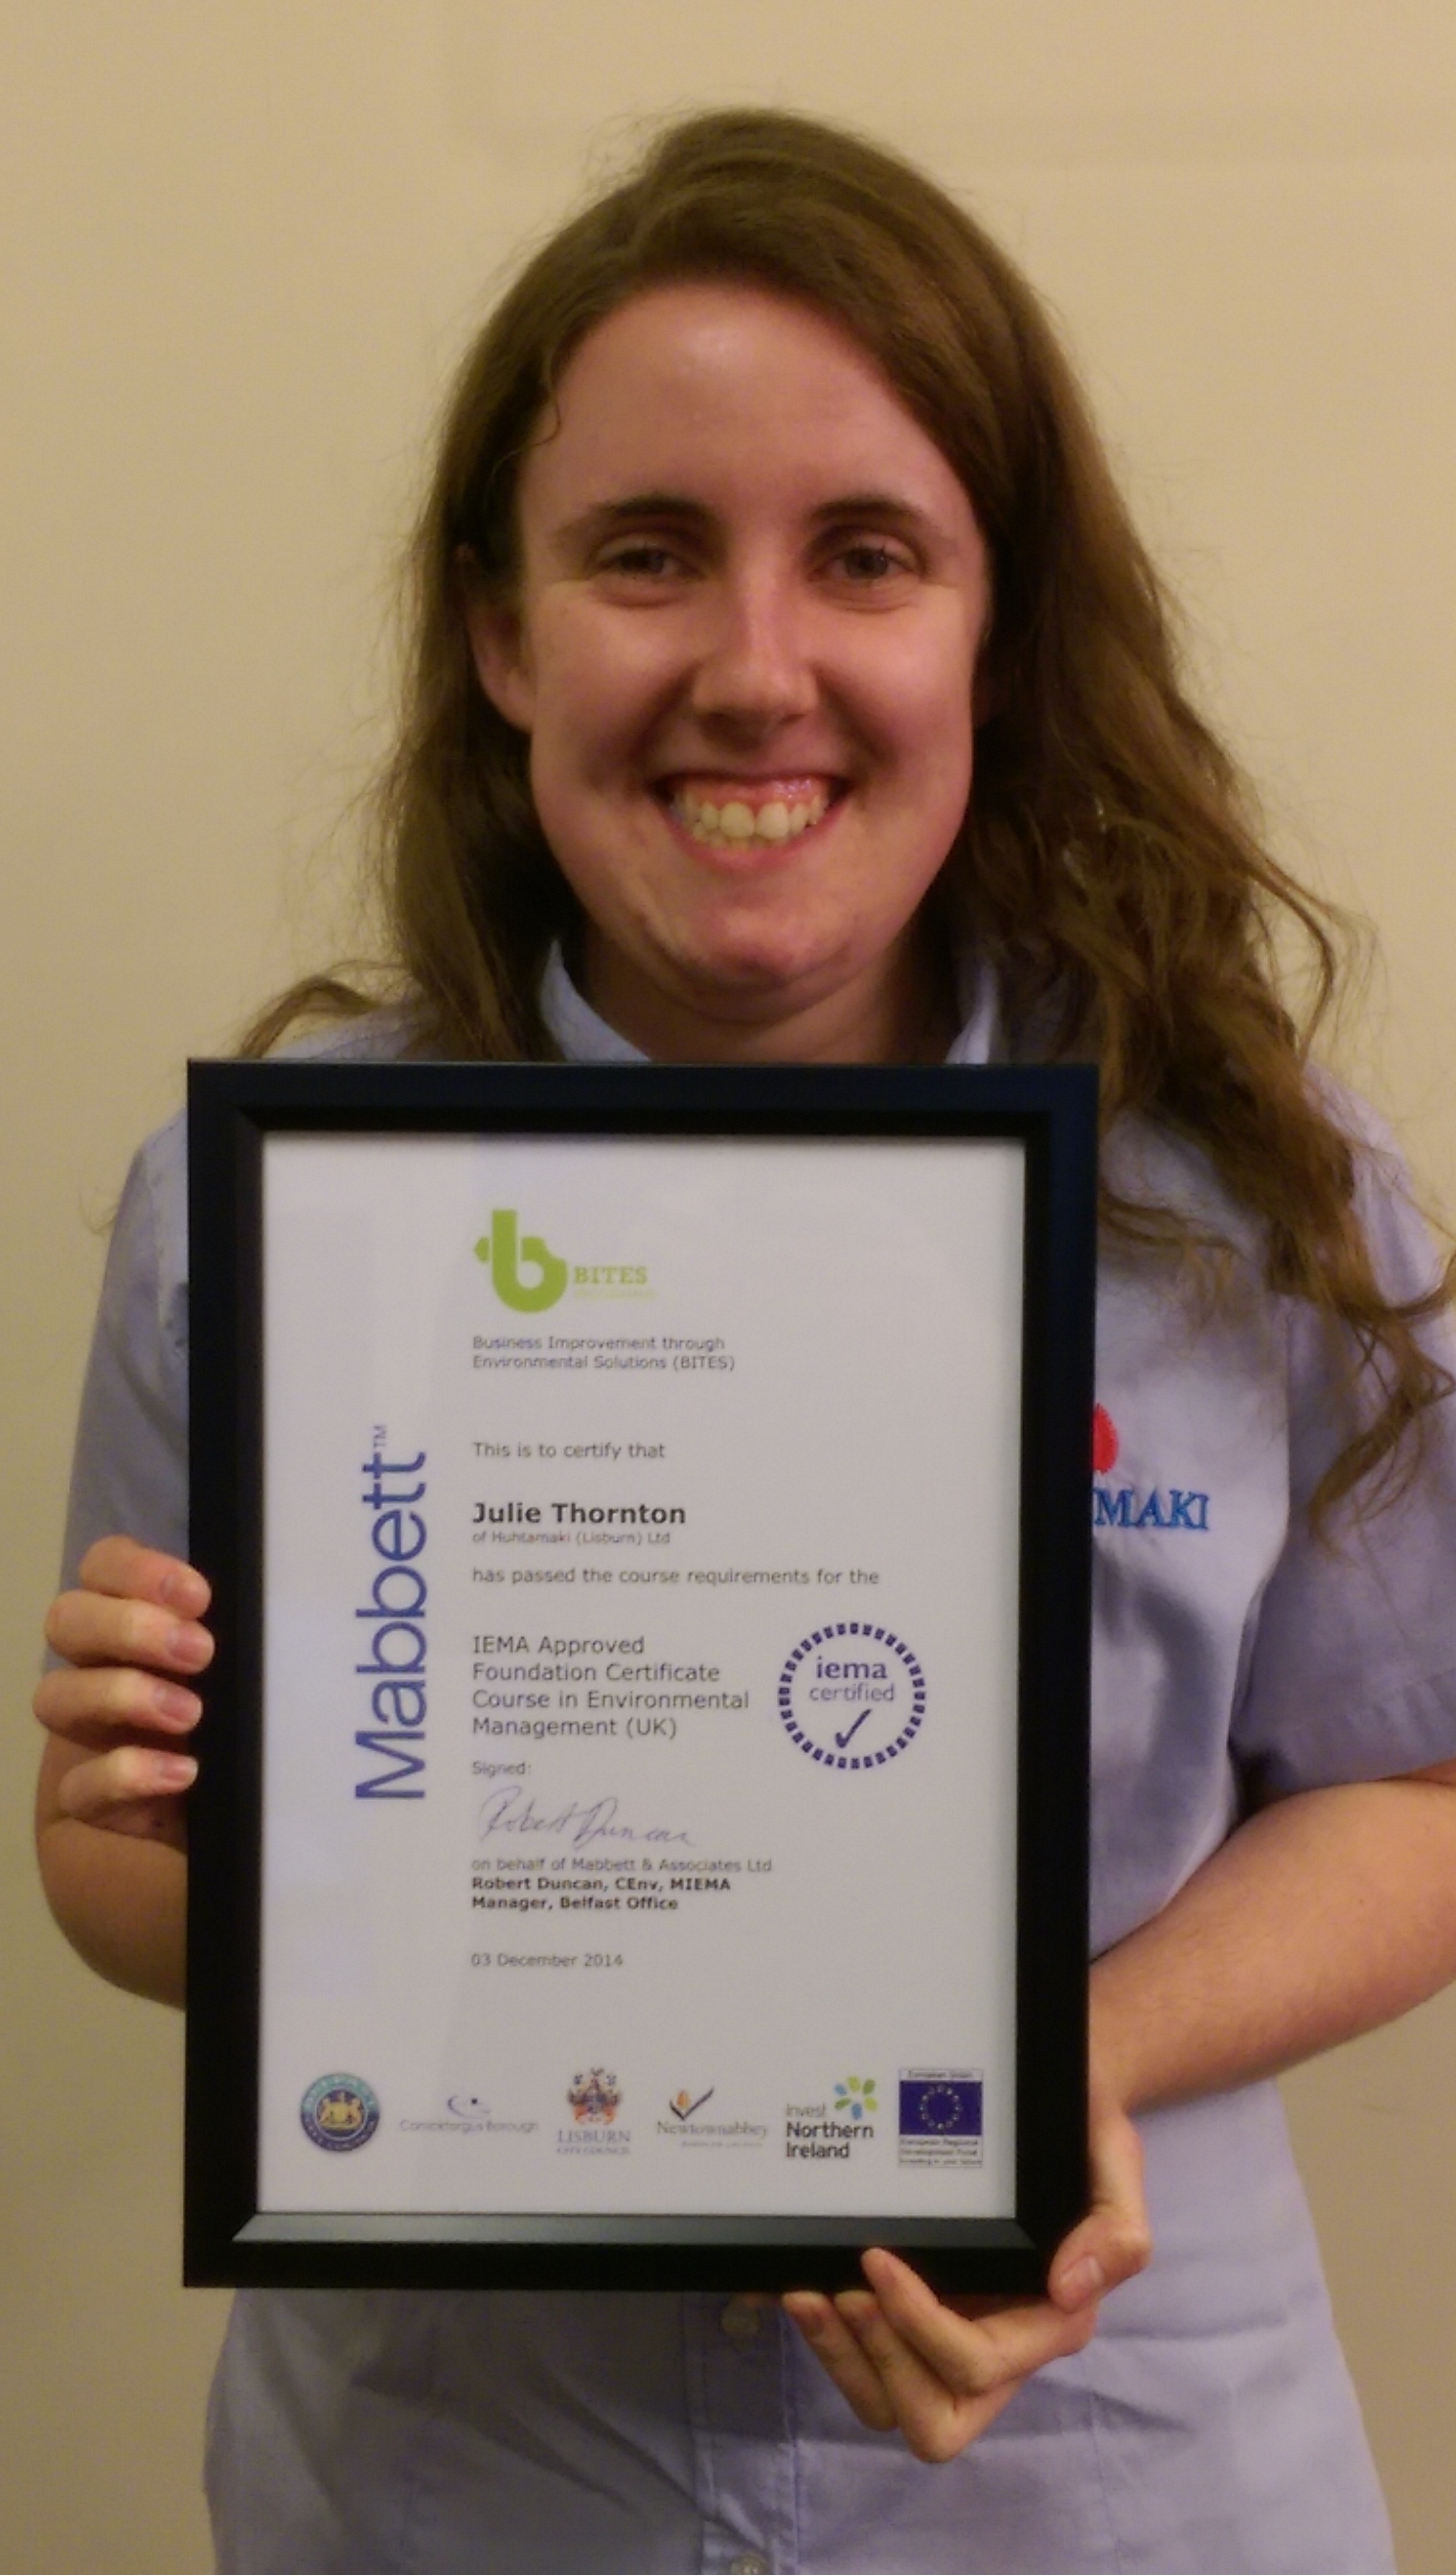 Julie Thornton awarded Environmental Management certificate